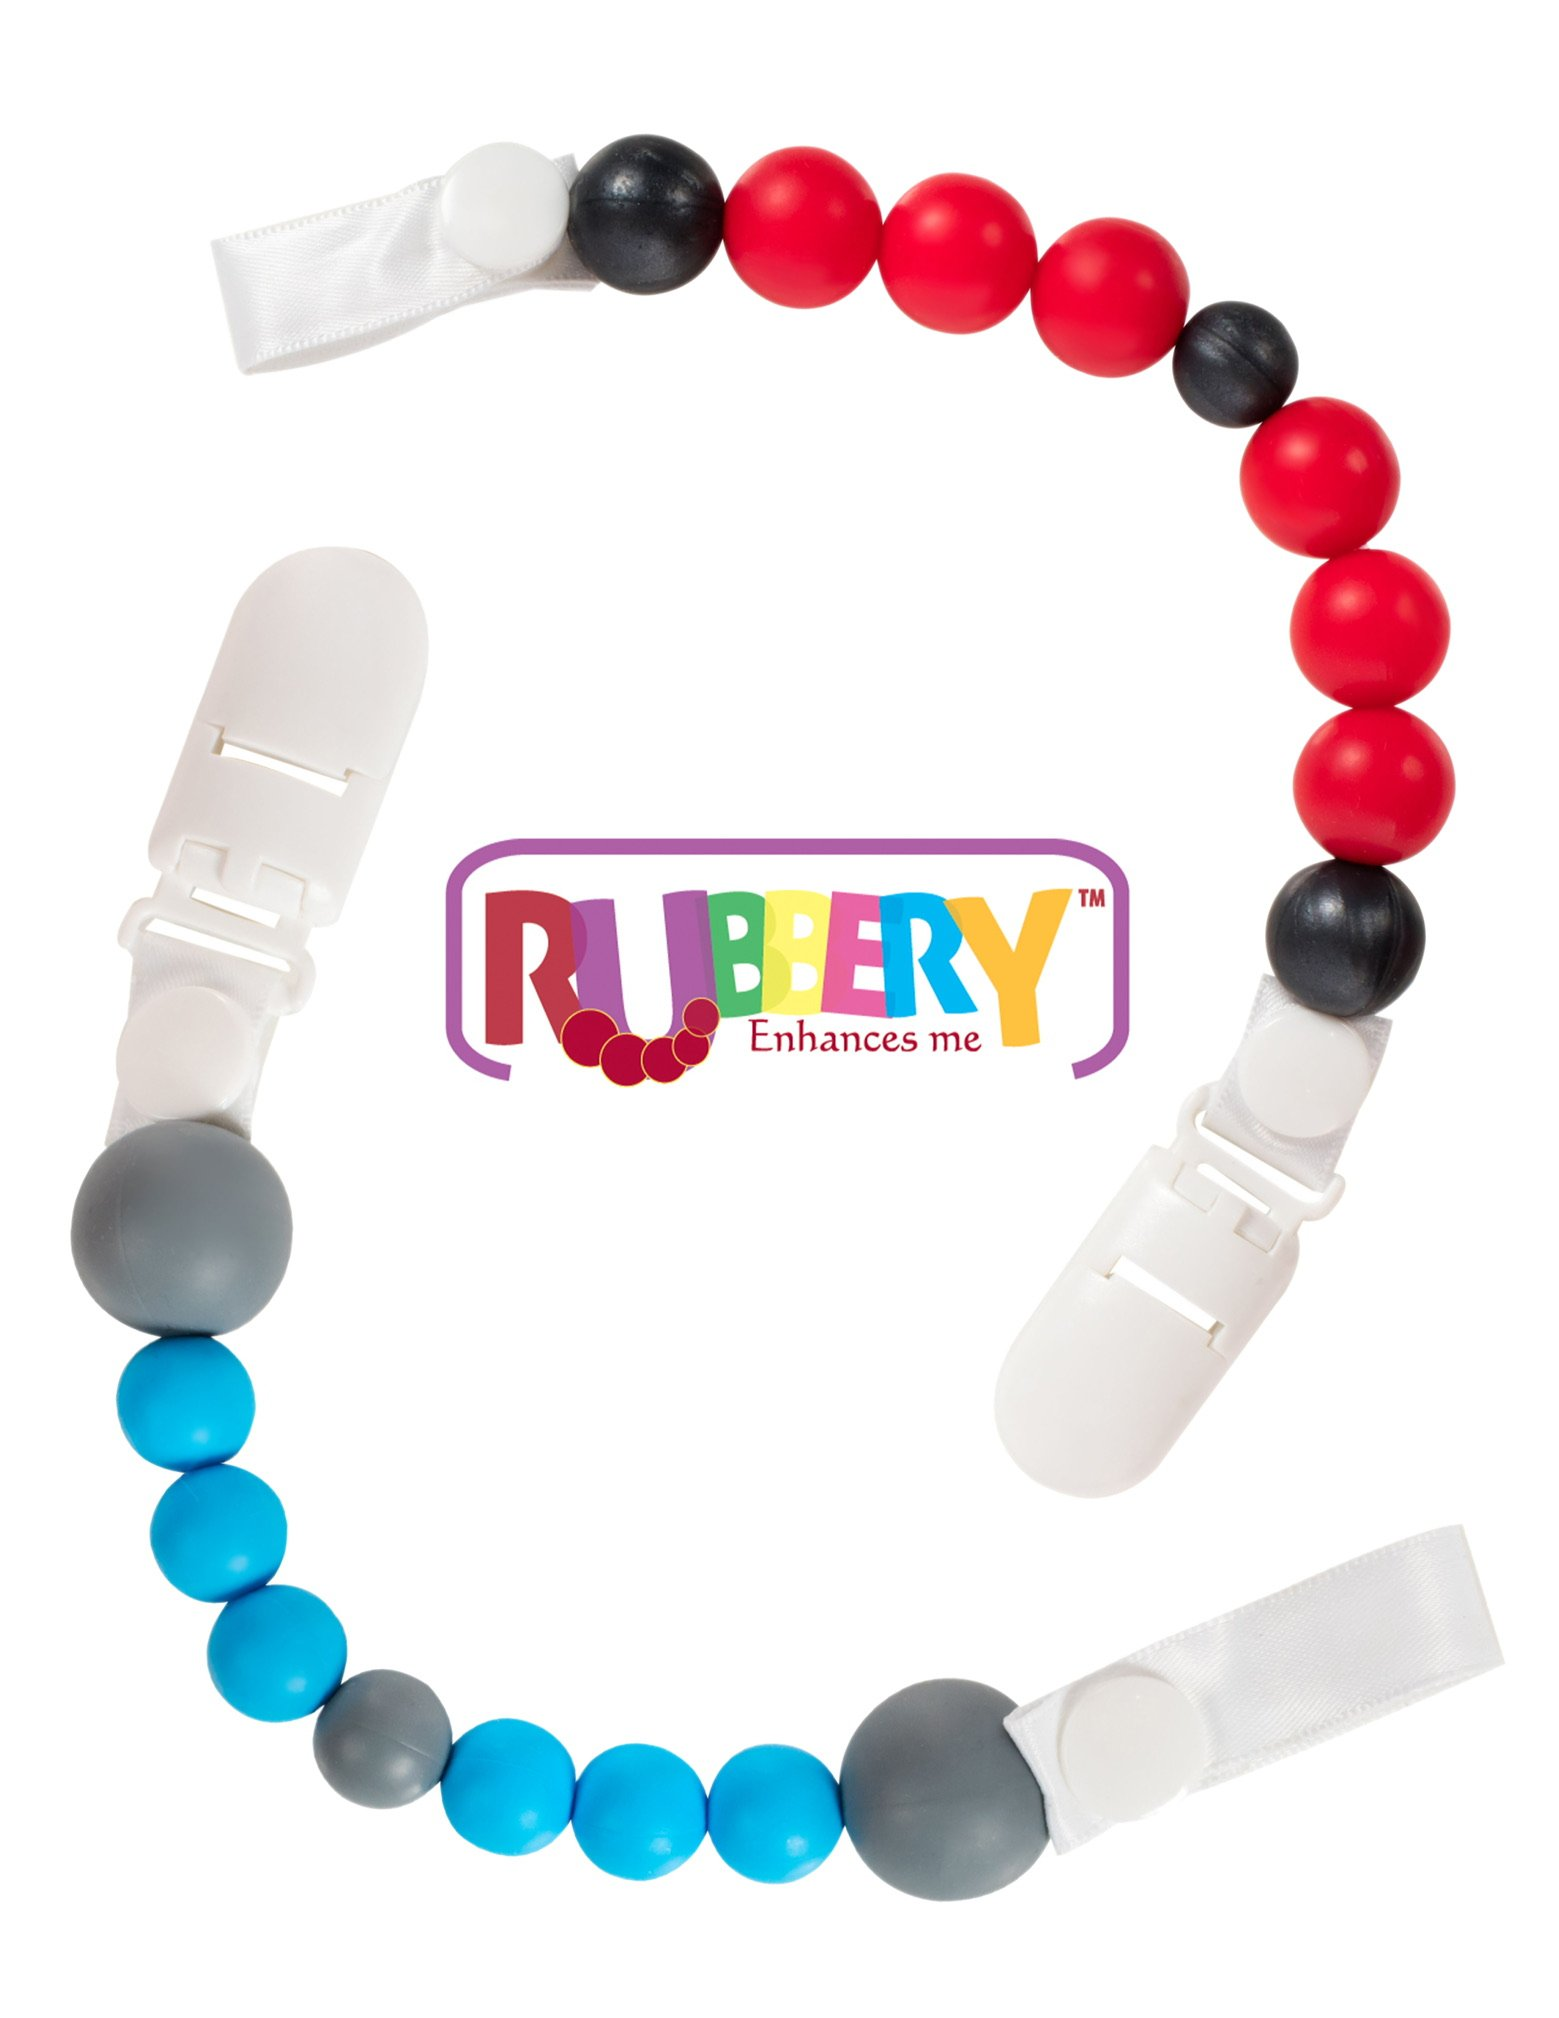 Silicone pacifier clip teething beads holder binky by Rubbery Enhances me